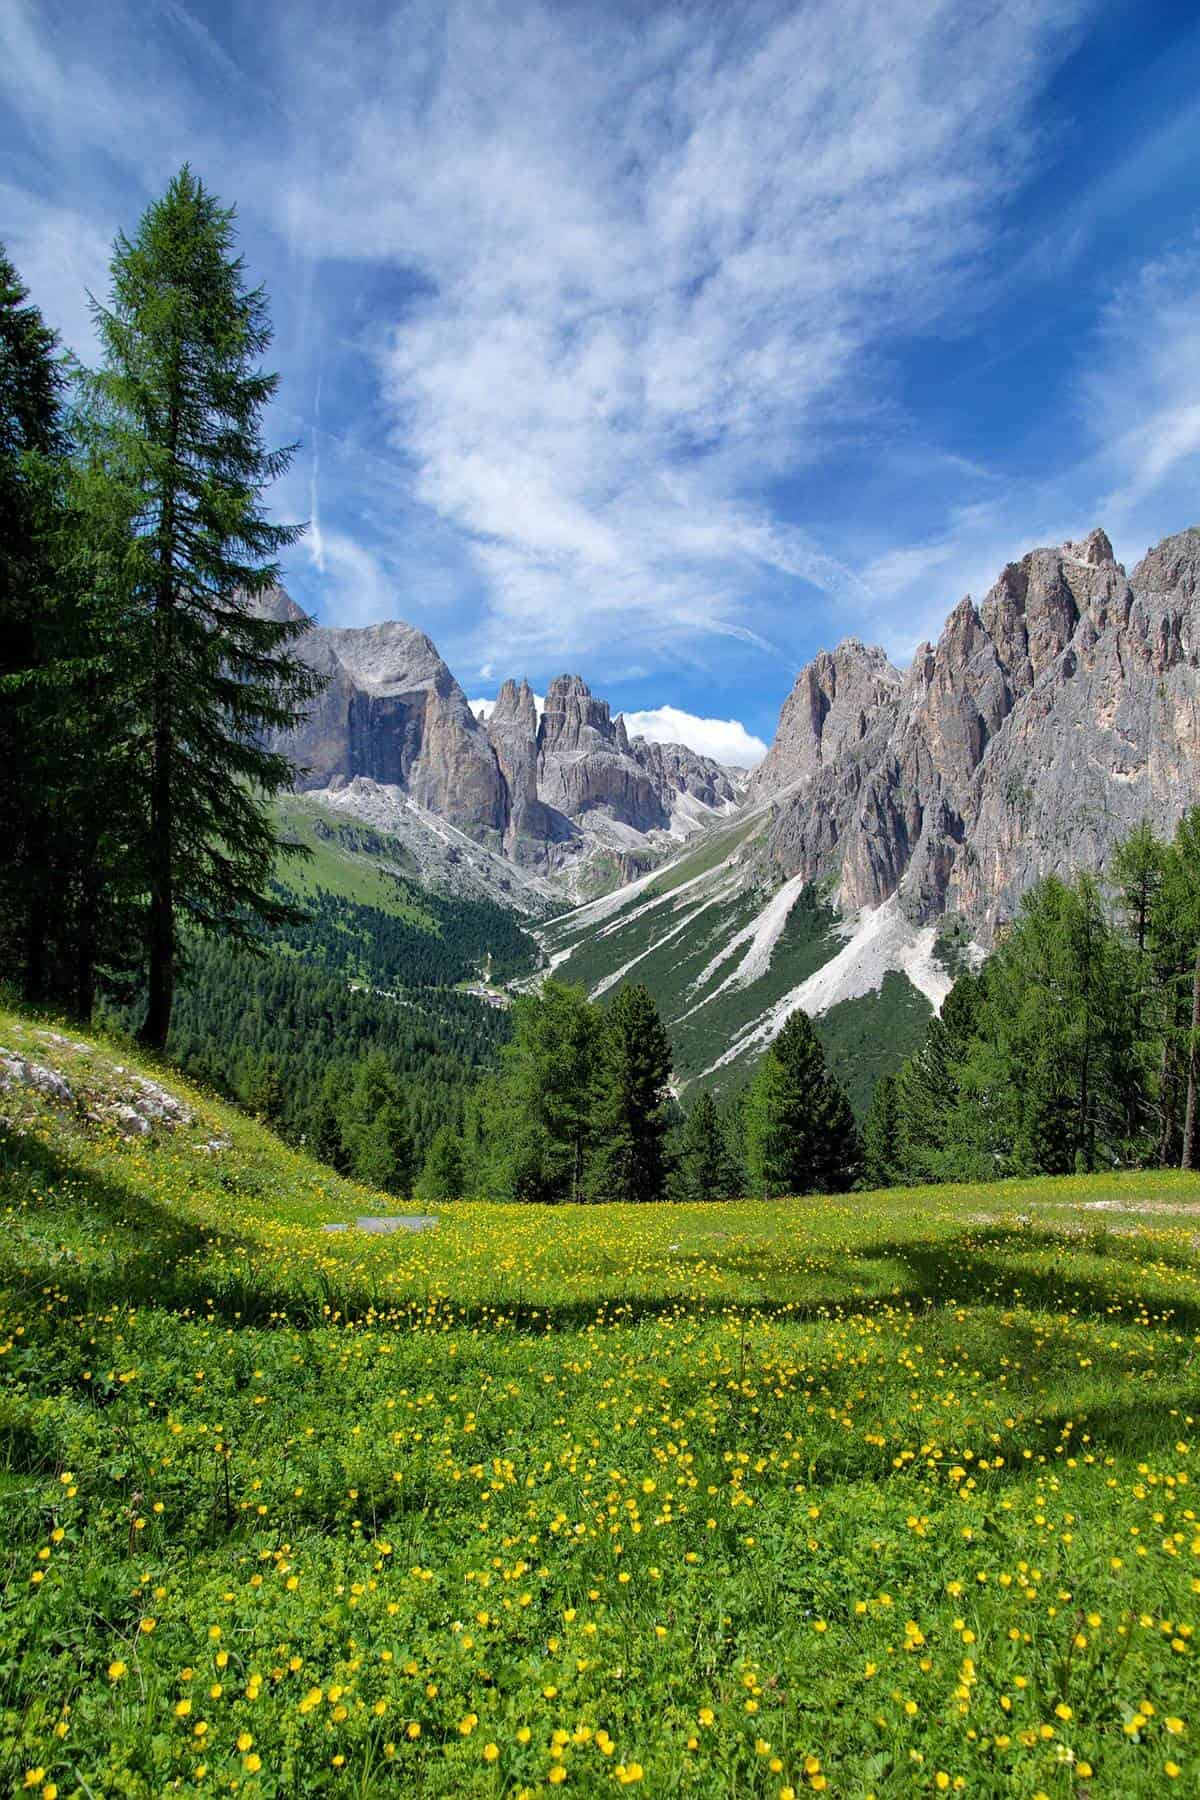 Best Place in Italy - The Alps